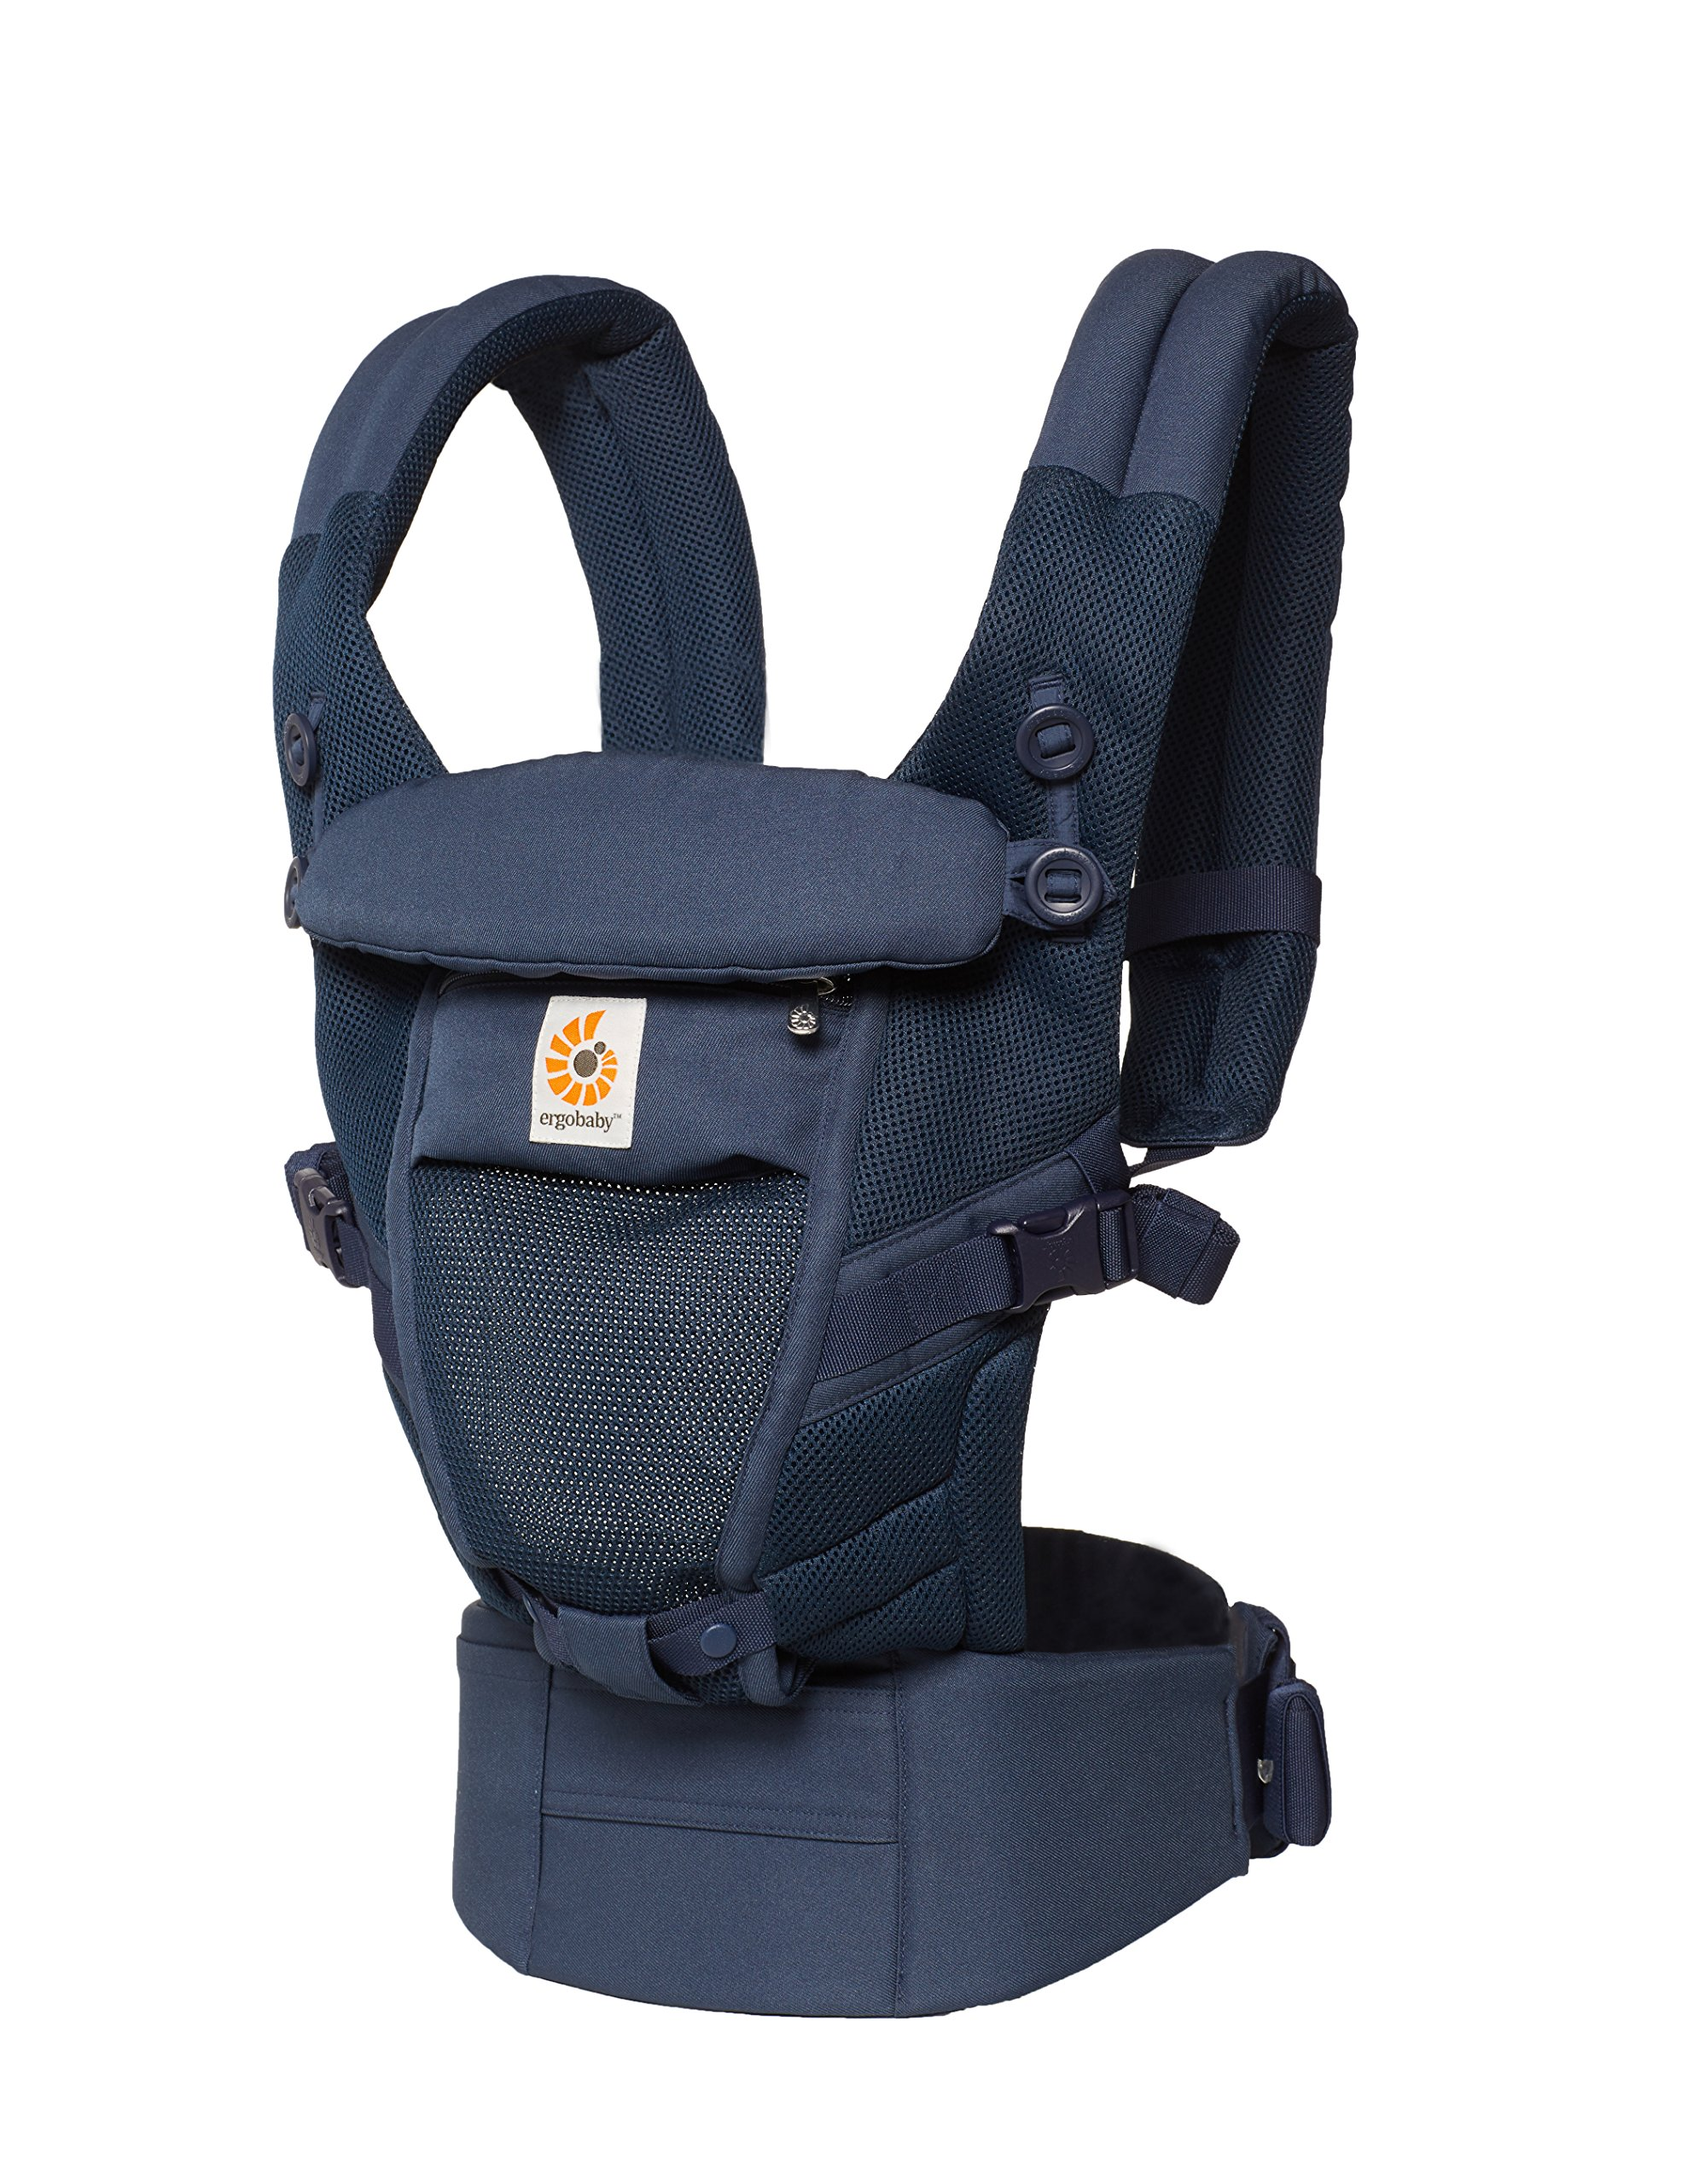 Ergobaby Adapt Baby Carrier, Infant To Toddler Carrier, Cool Air Mesh, Multi-Position, Deep Blue